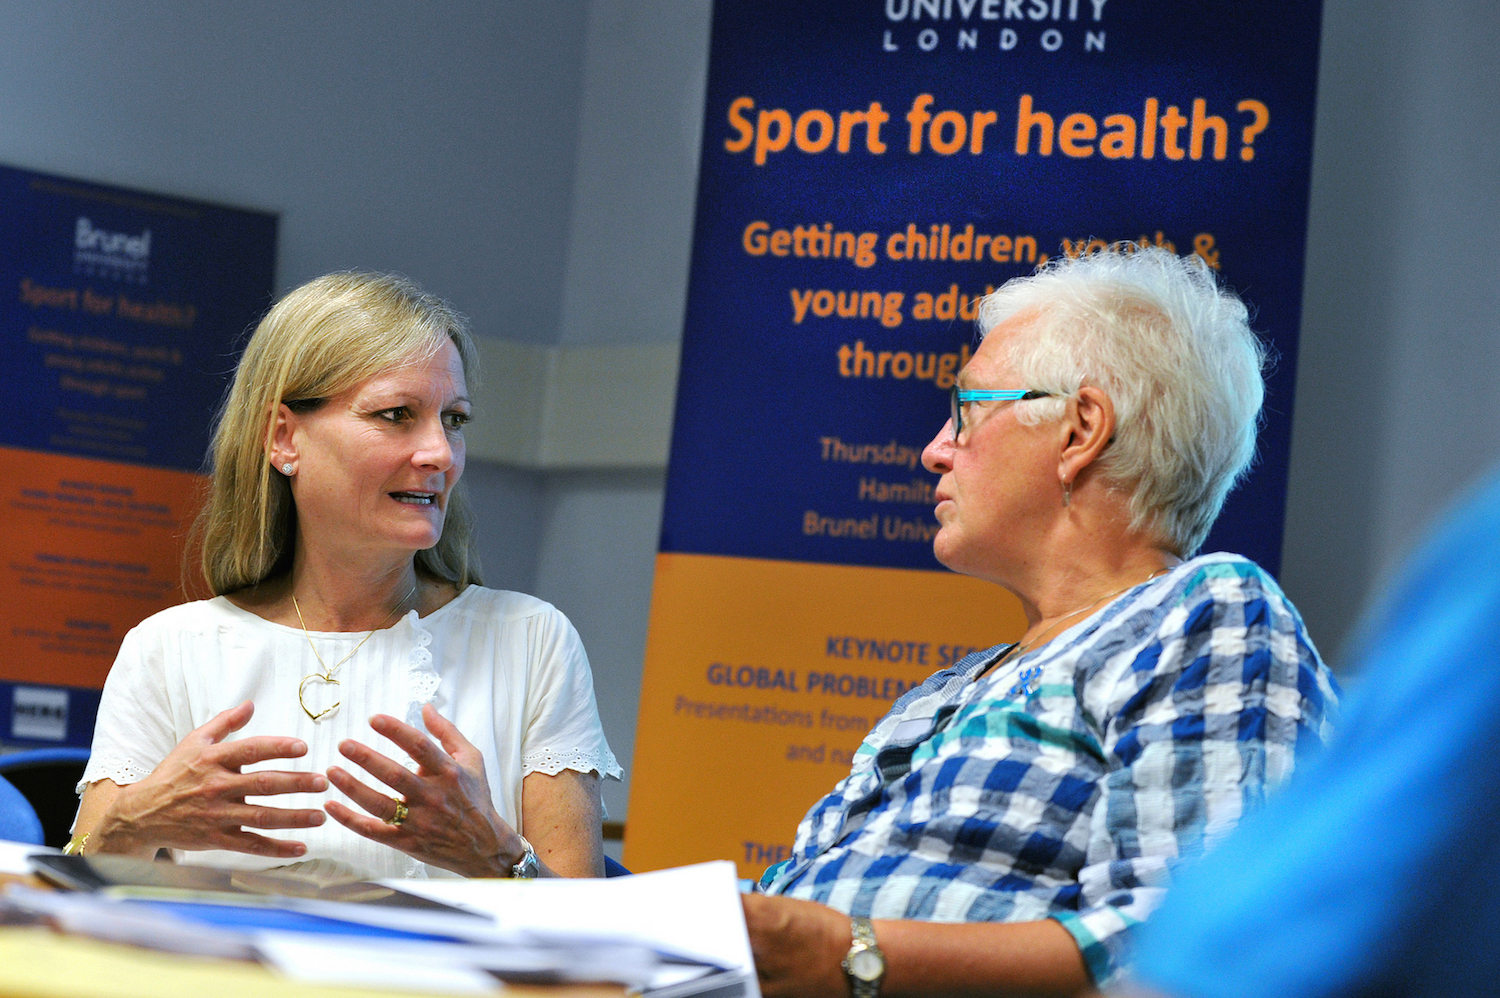 Susan Bissell, UNICEF's Chief of Child Protection, with Professor Celia Brackenridge, Emeritus Professor at Brunel University London's Centre for Sport, Health and Wellbeing.